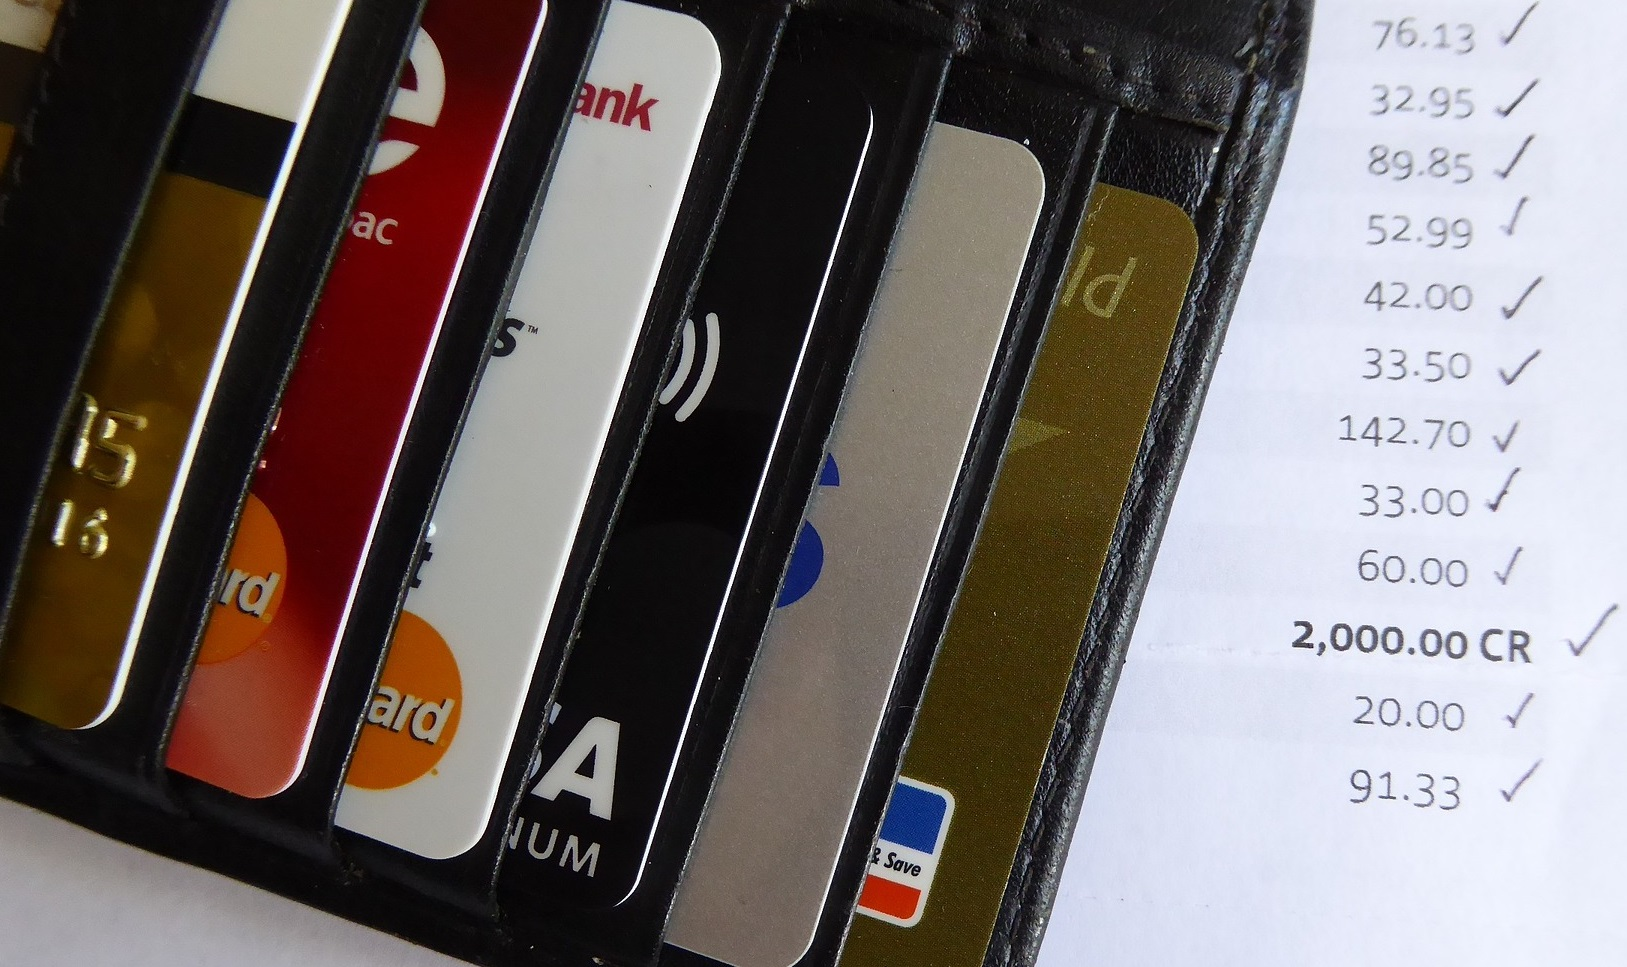 What are Credit Card Fees?